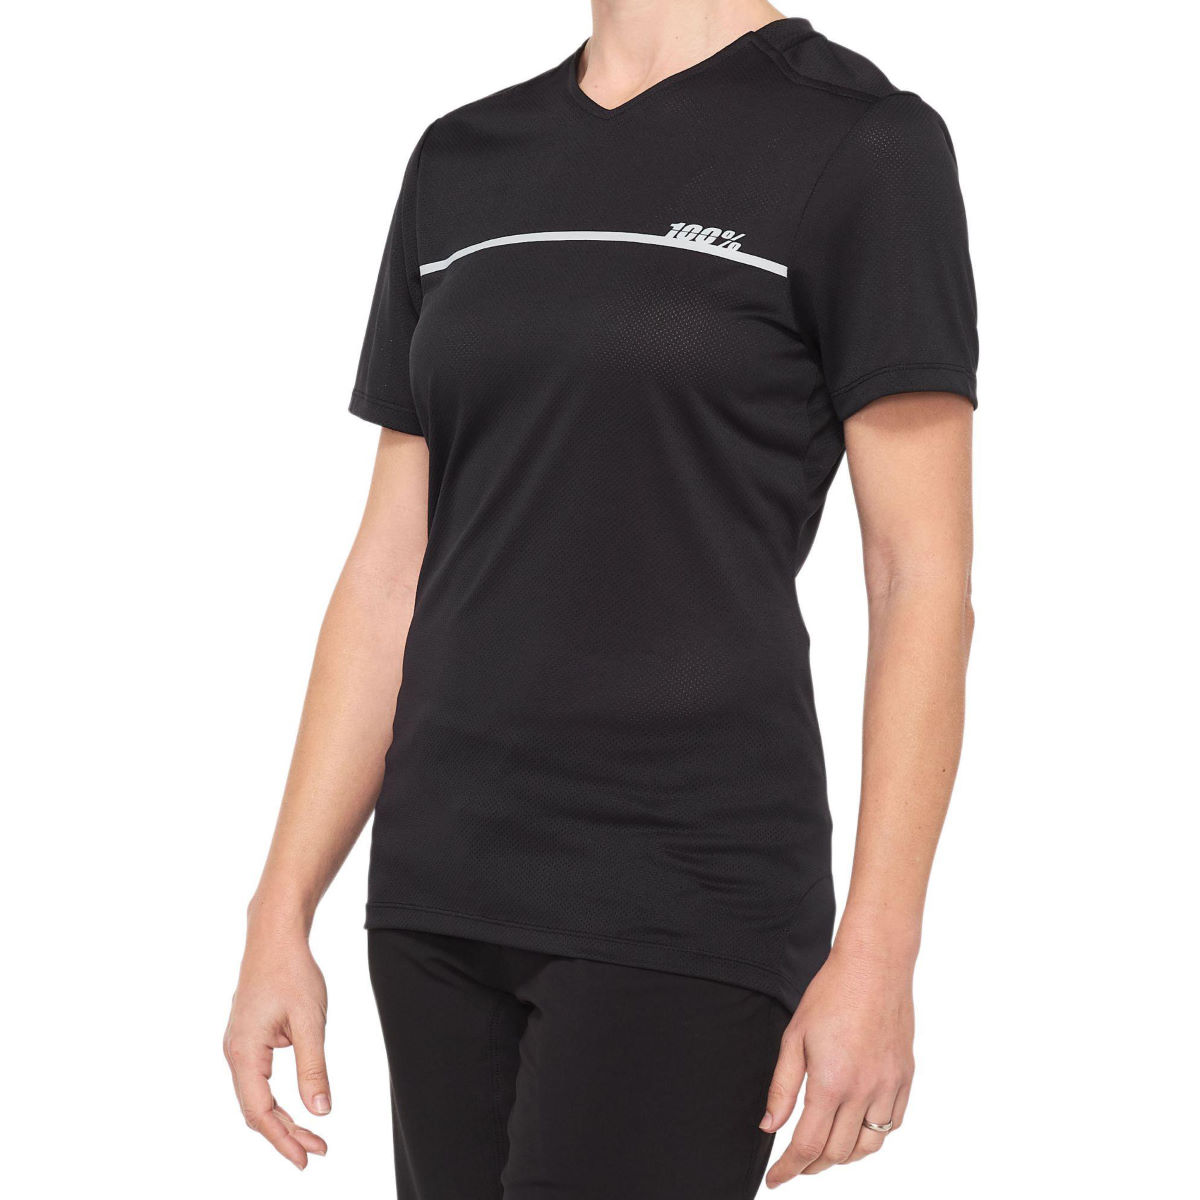 100% Womens Ridecamp Jersey - L Black/grey  Jerseys